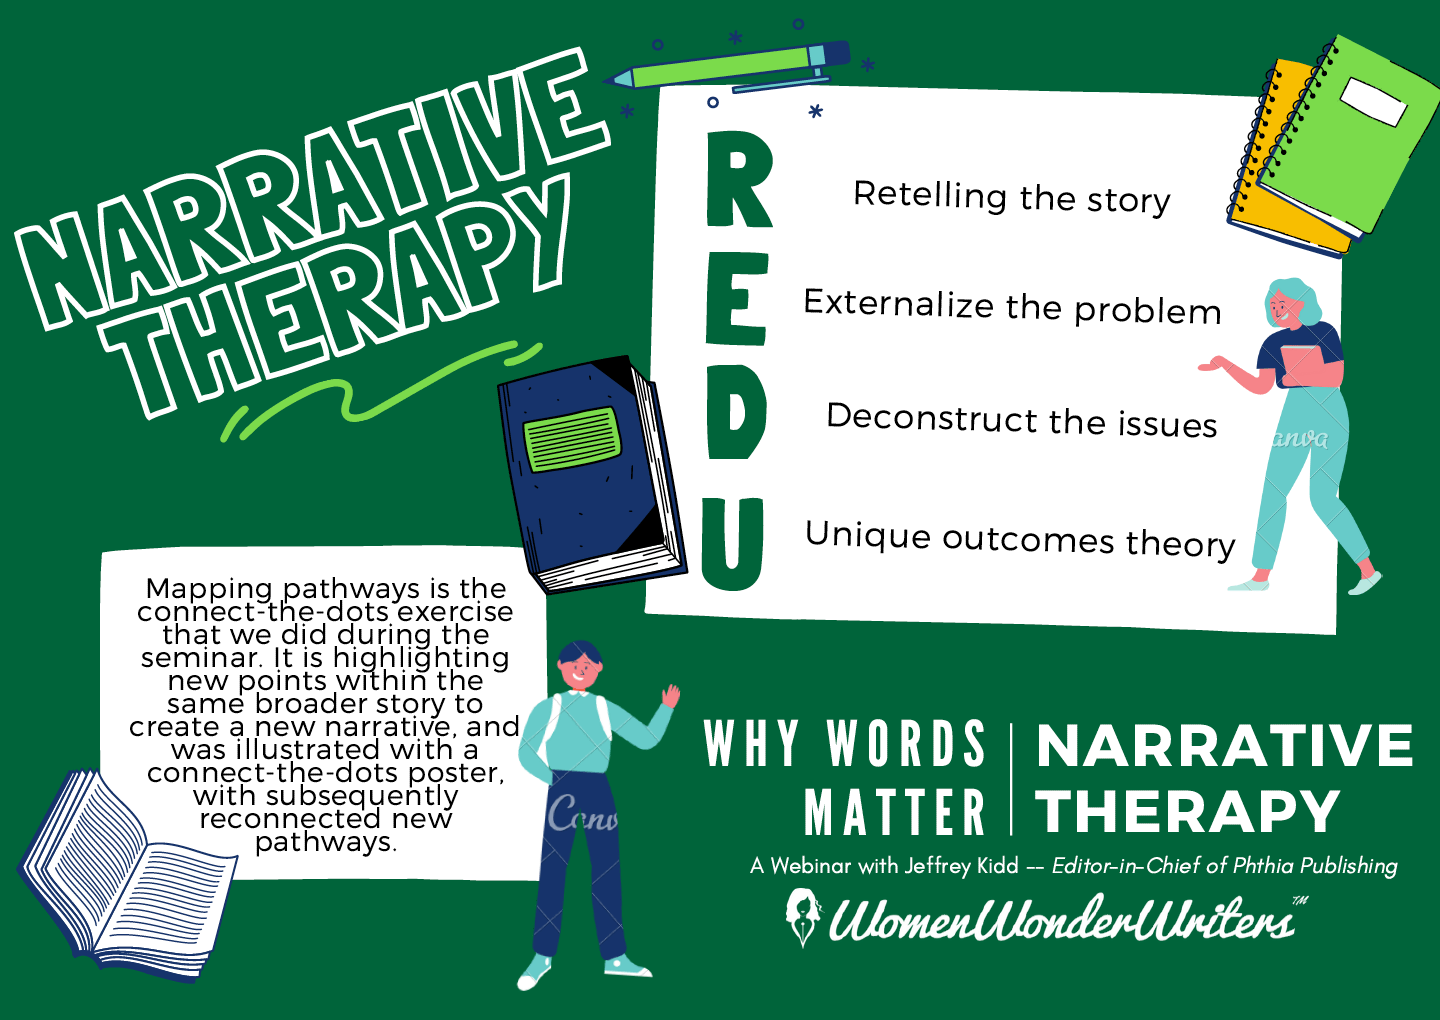 What is Narrative Therapy